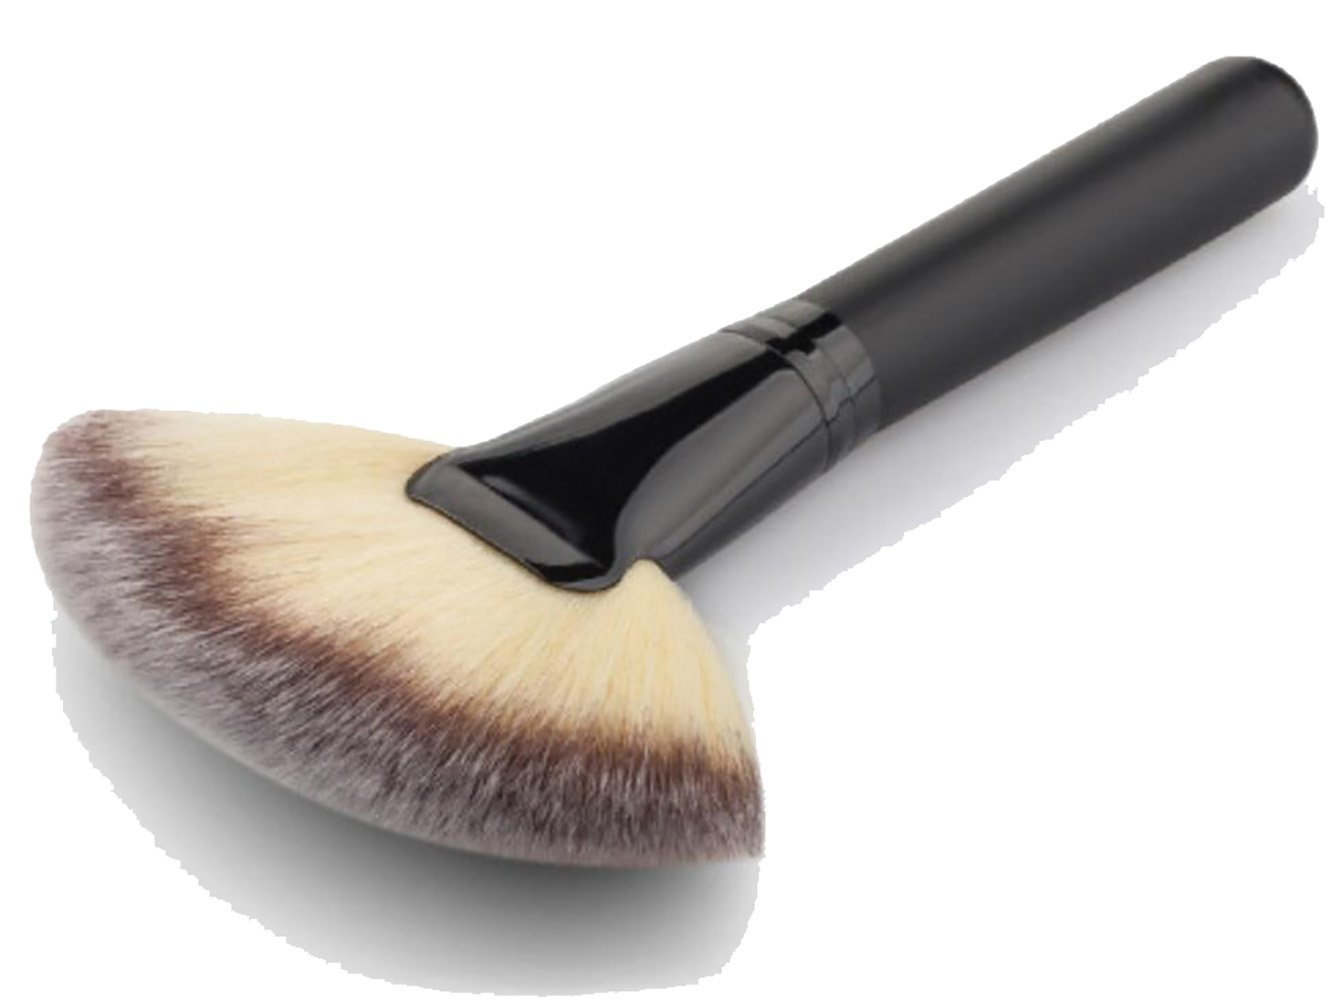 Multifunzionale pennello a ventaglio Essential Brushes Make Up pennello Blush Fondazione Pennello Cosmetico Adore center